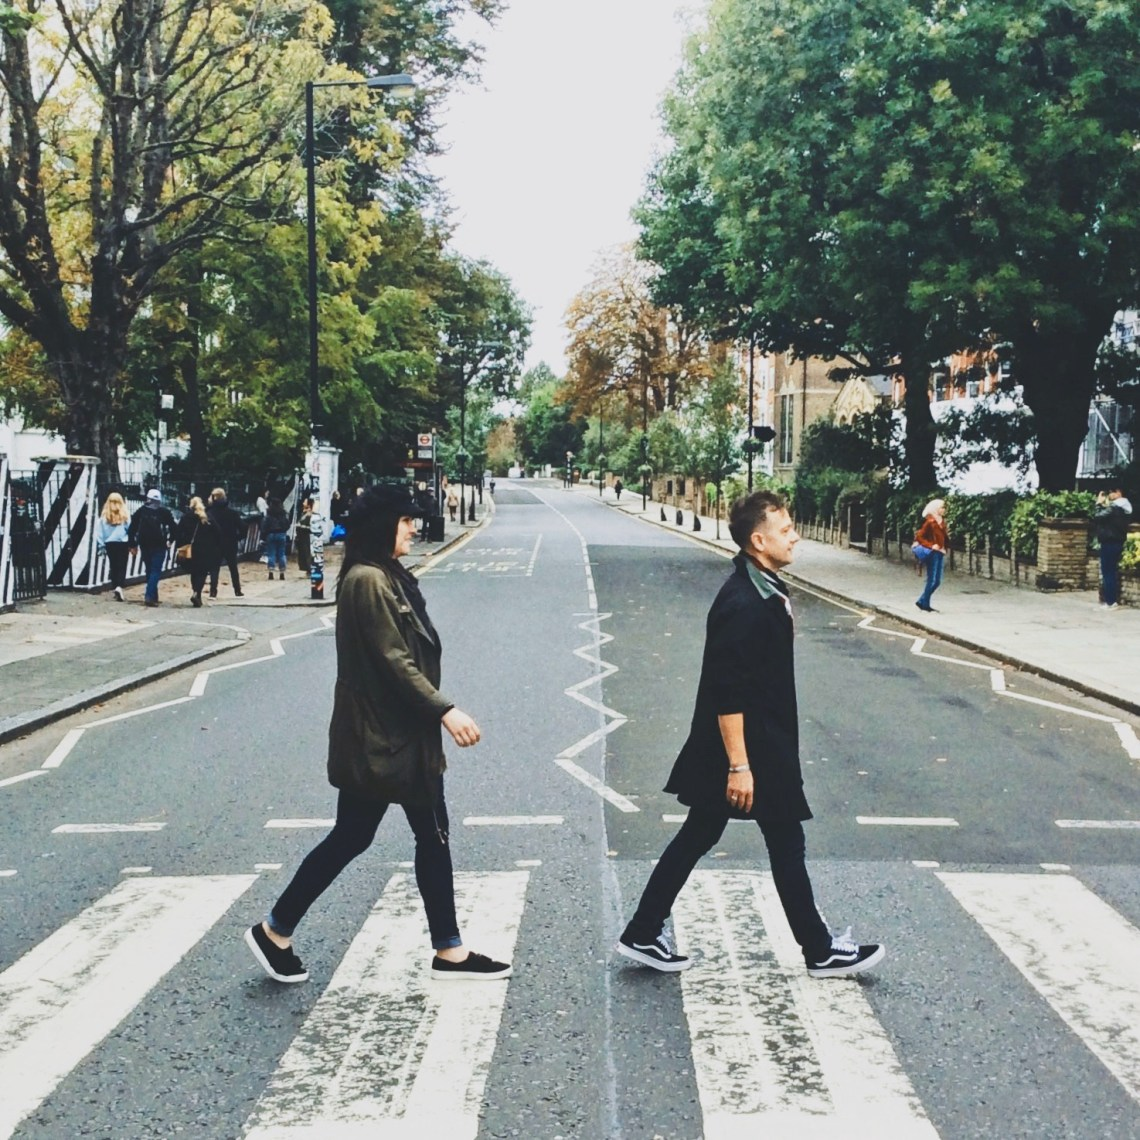 Stephen & Andie cross the street at the famous Abbey Road crossing in London, England